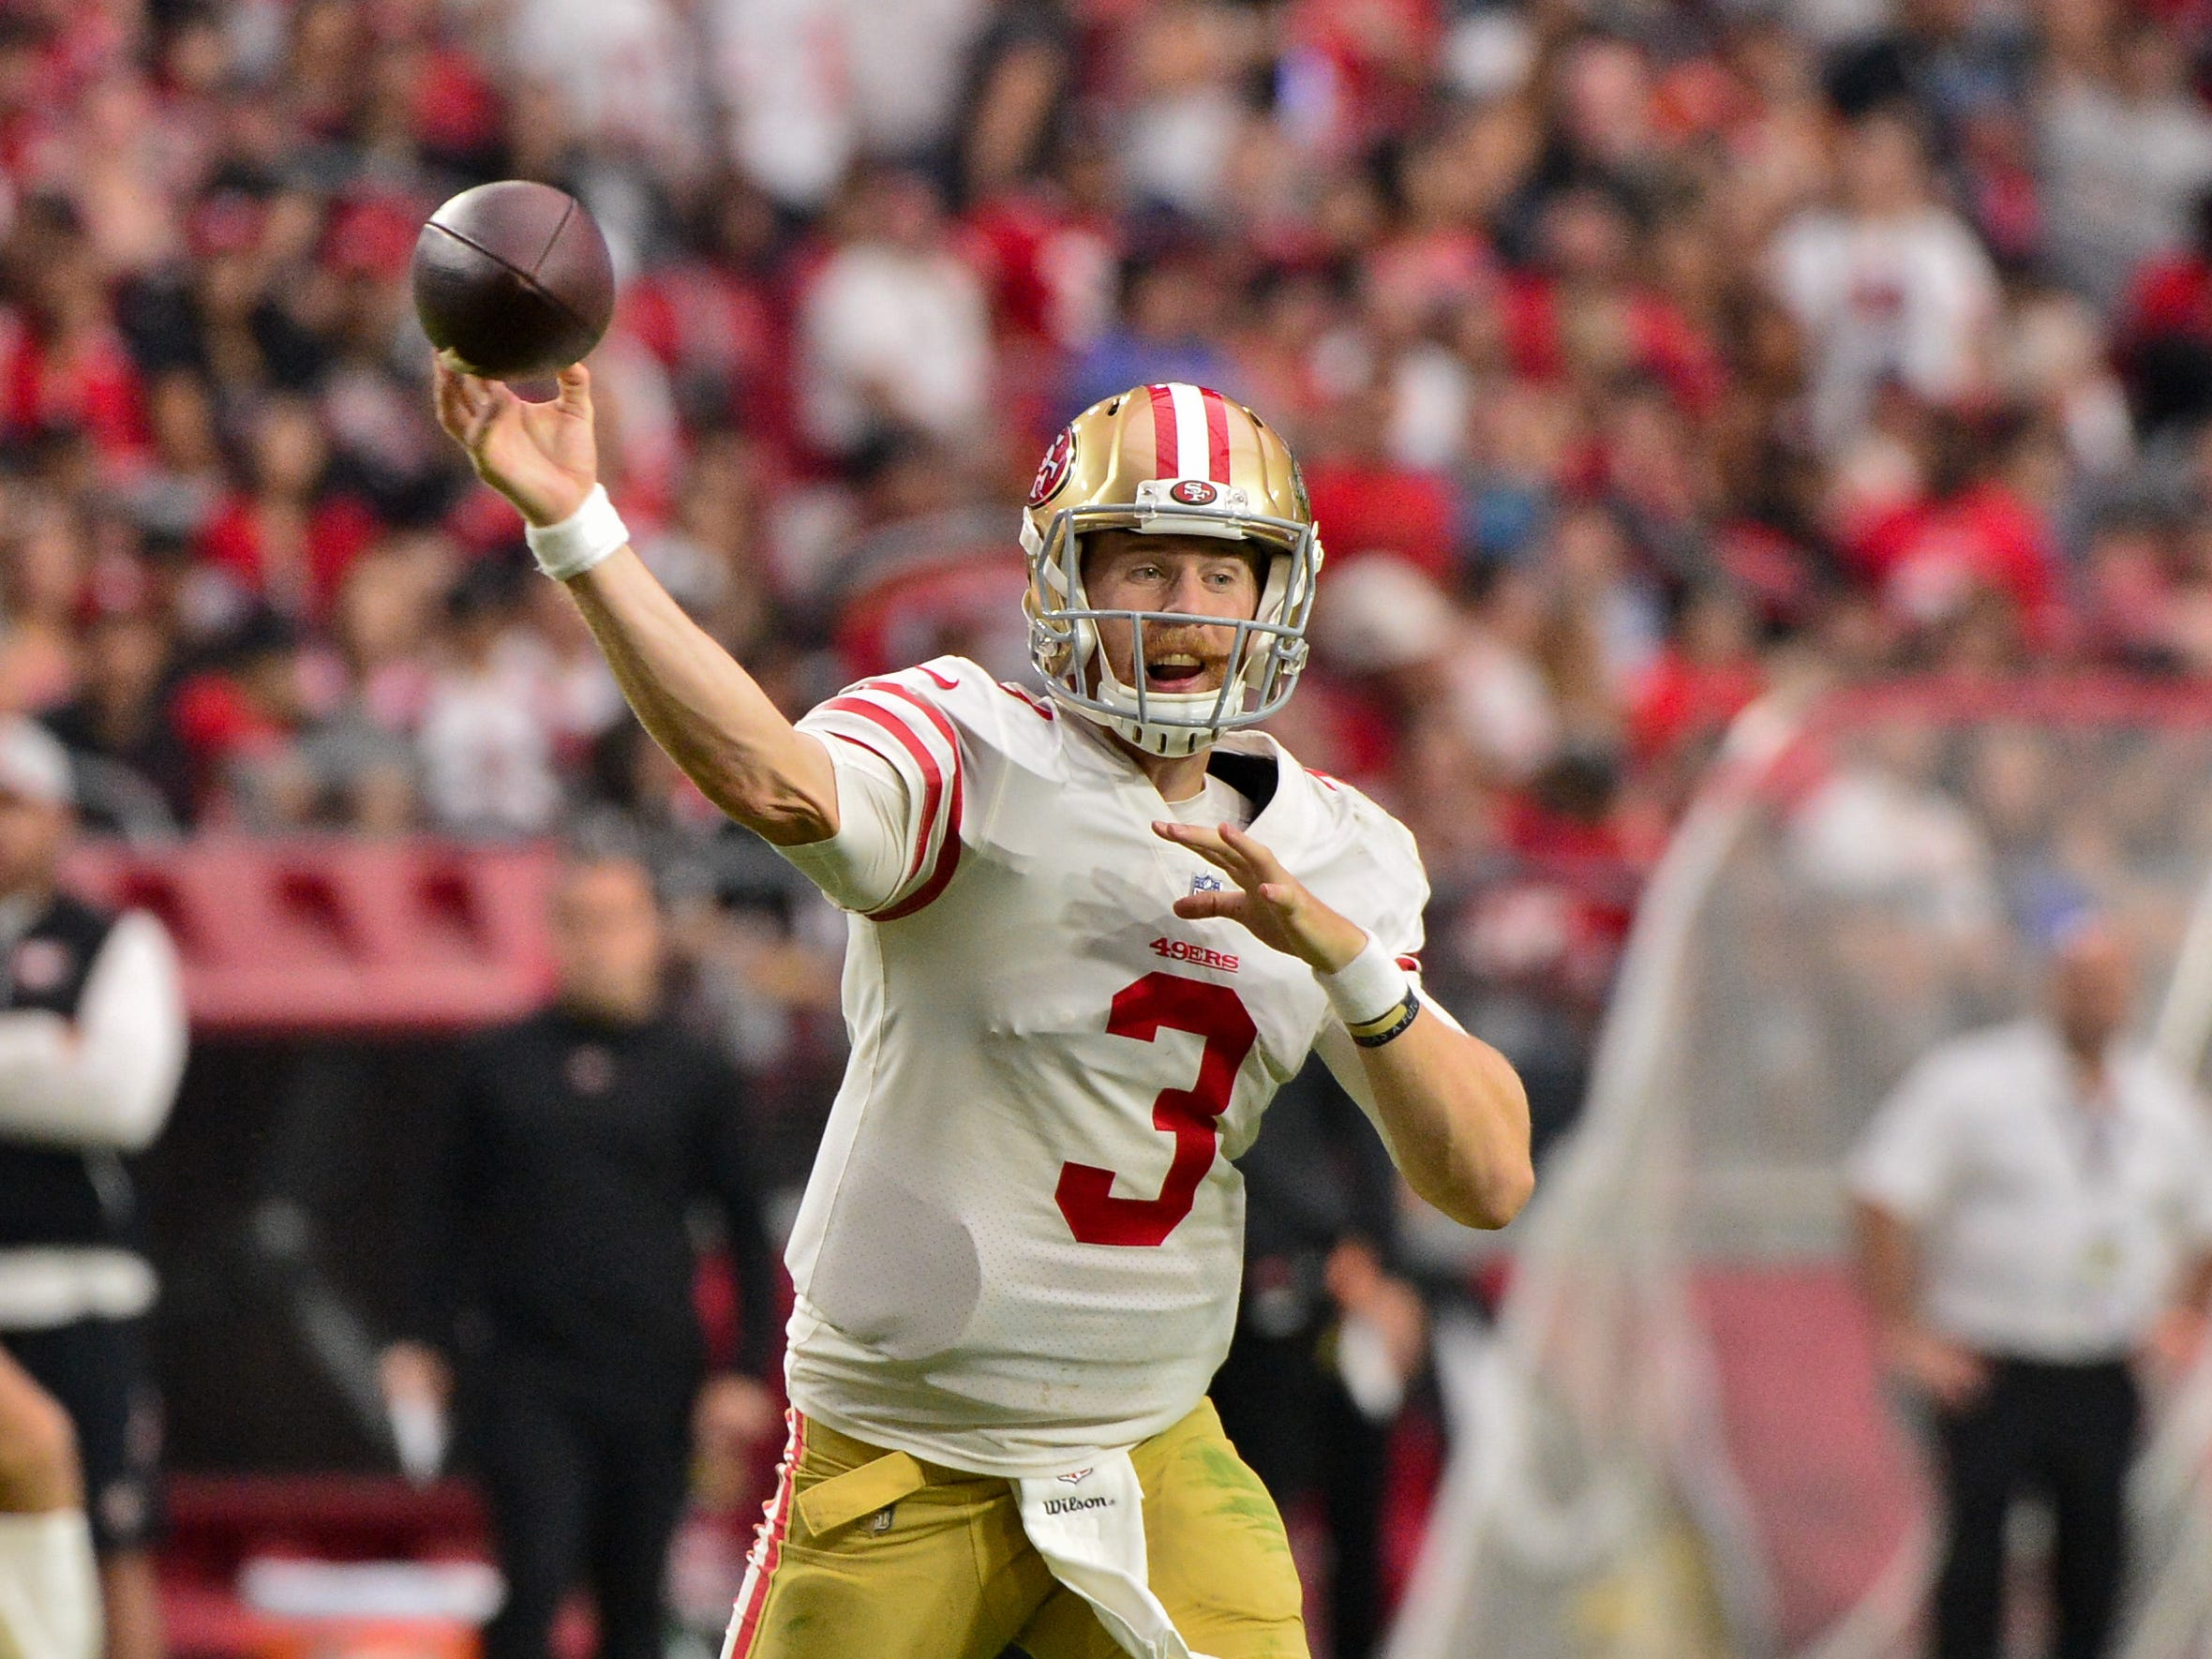 Oct 28, 2018; Glendale, AZ, USA; San Francisco 49ers quarterback C.J. Beathard (3) throws during the first half against the Arizona Cardinals at State Farm Stadium.